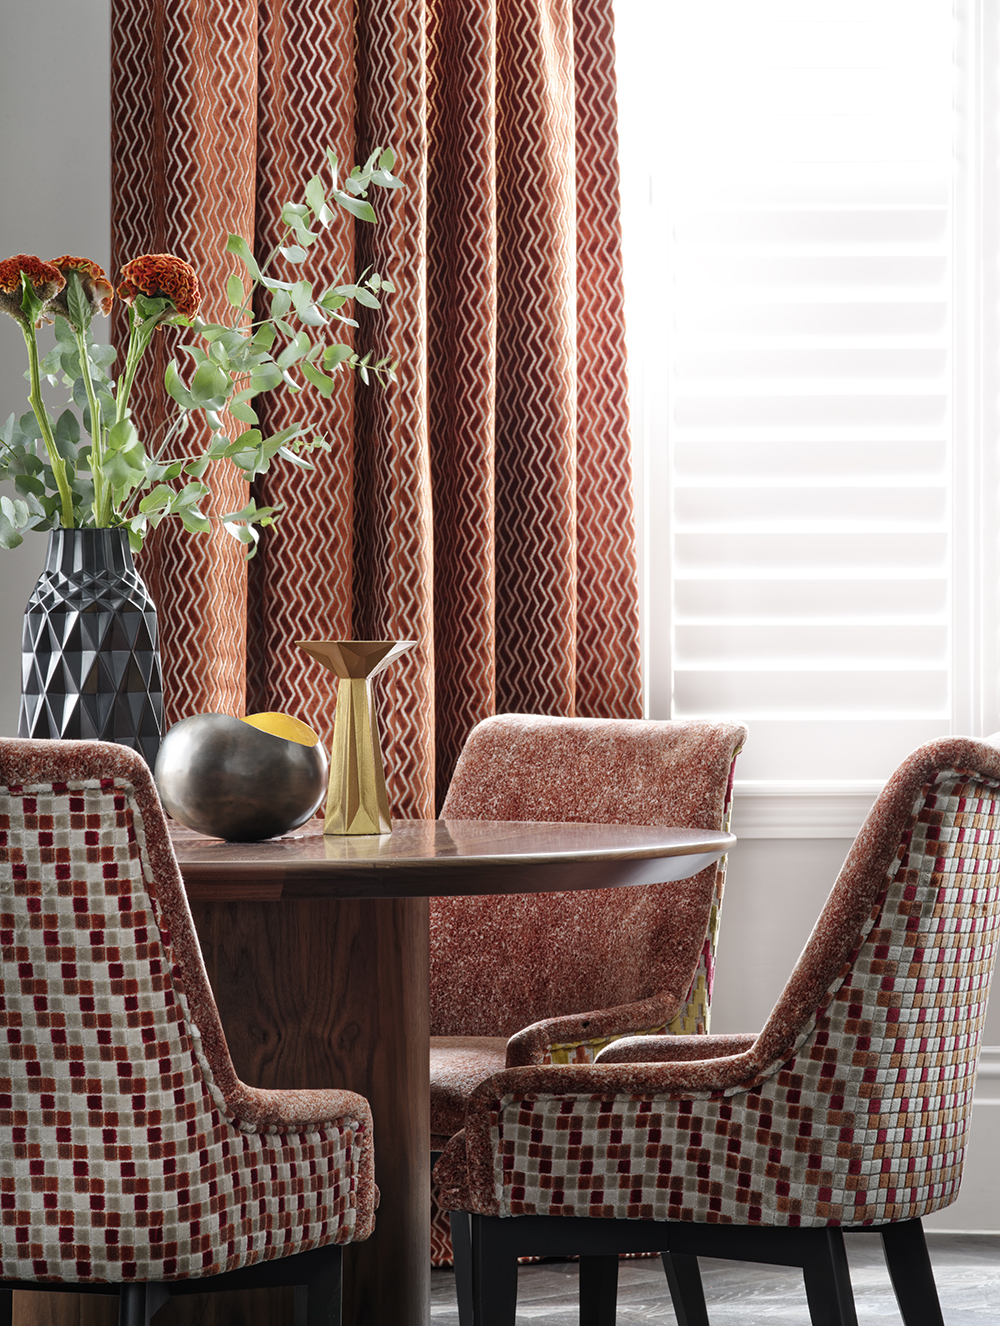 Warm terracotta decor in dining room.